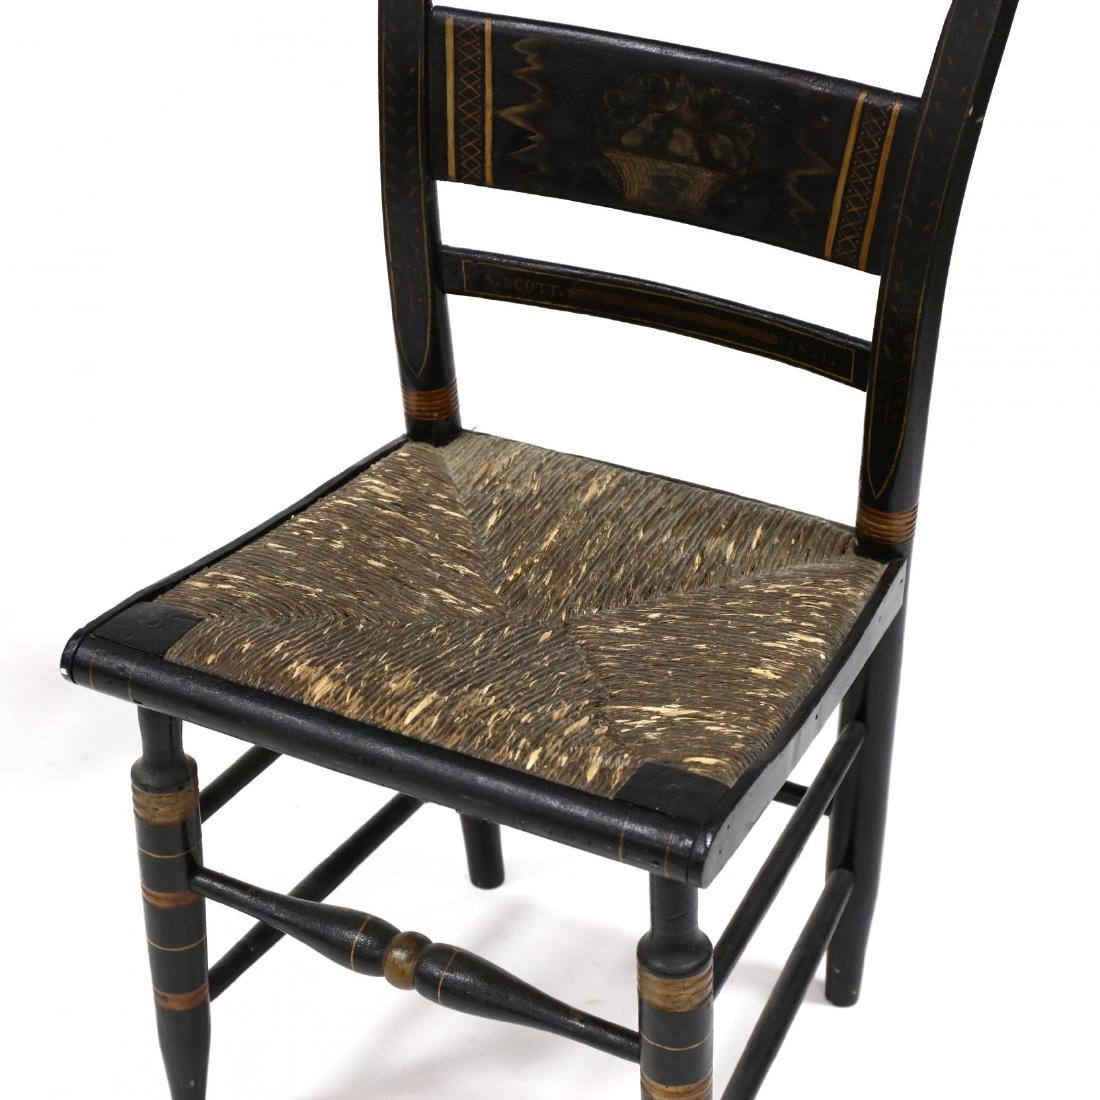 Two Antique Hitchcock Chairs - 2